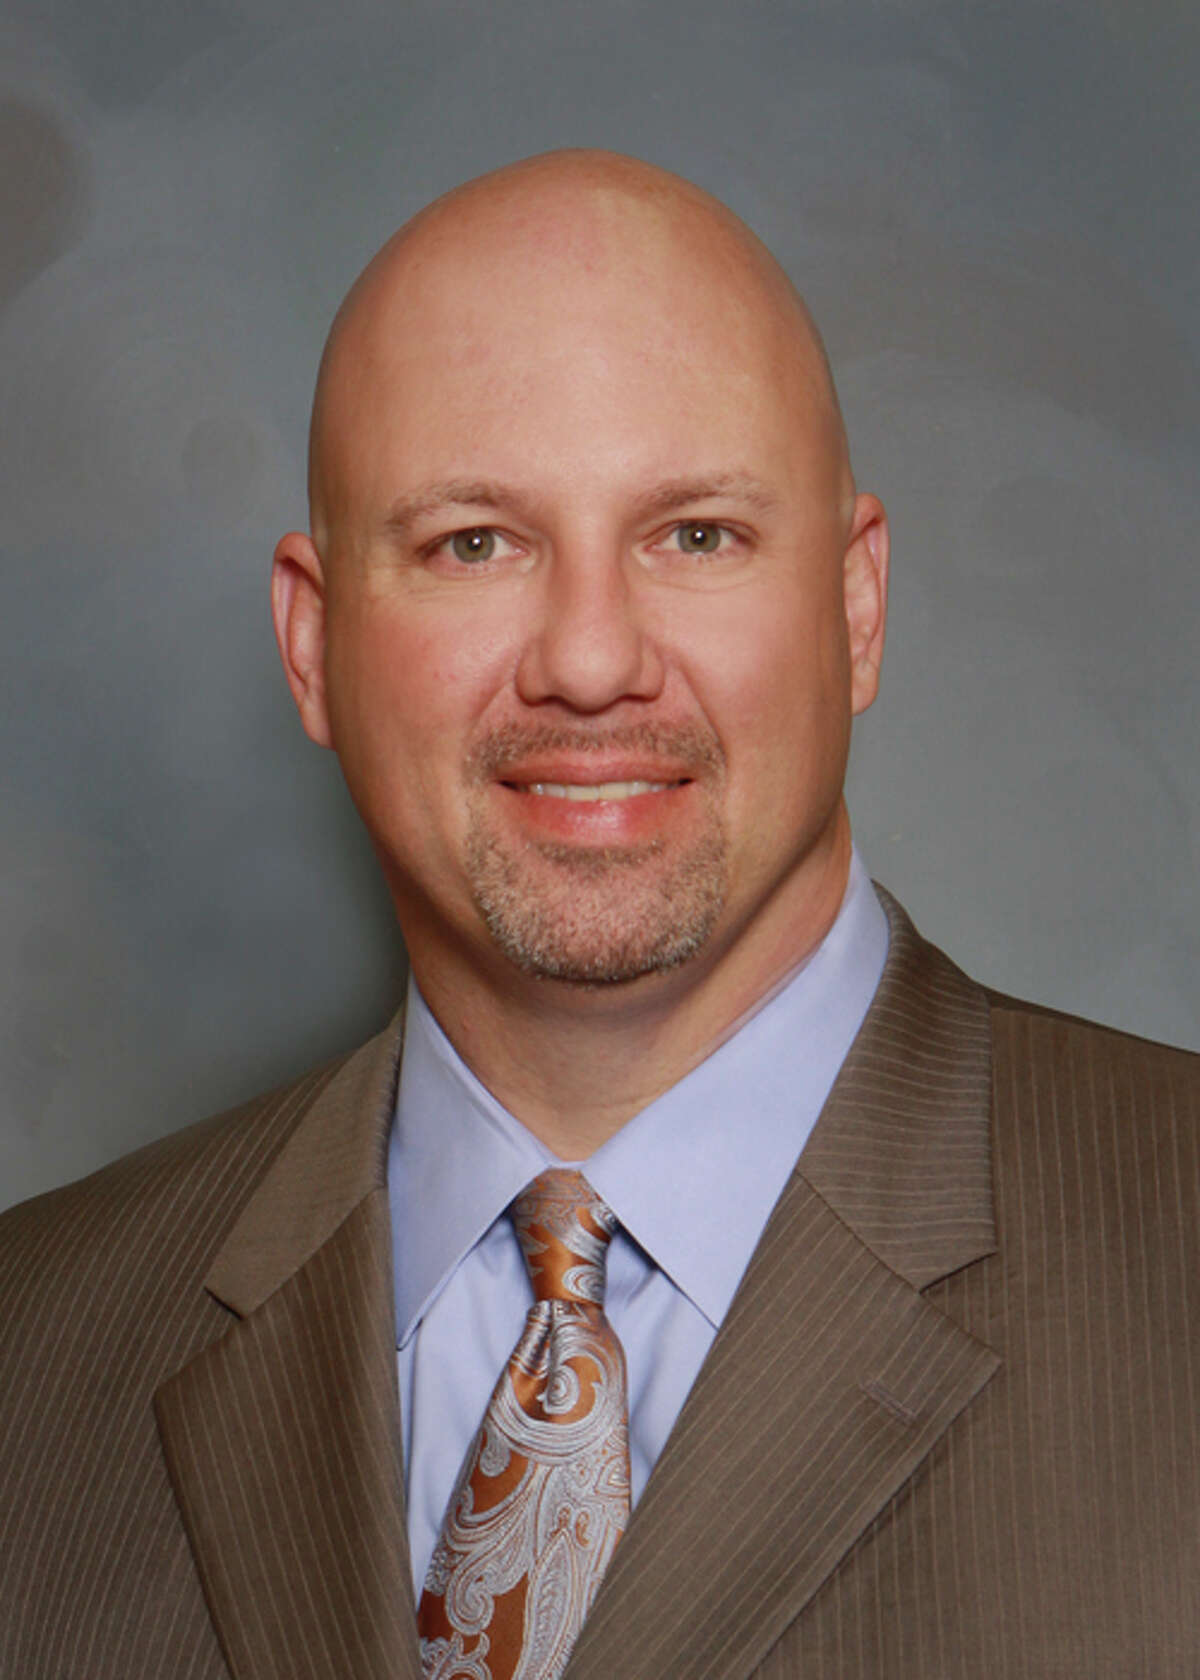 Blake Hubbard has been named chief executive officer of Foundation Surgical Hospital of San Antonio.